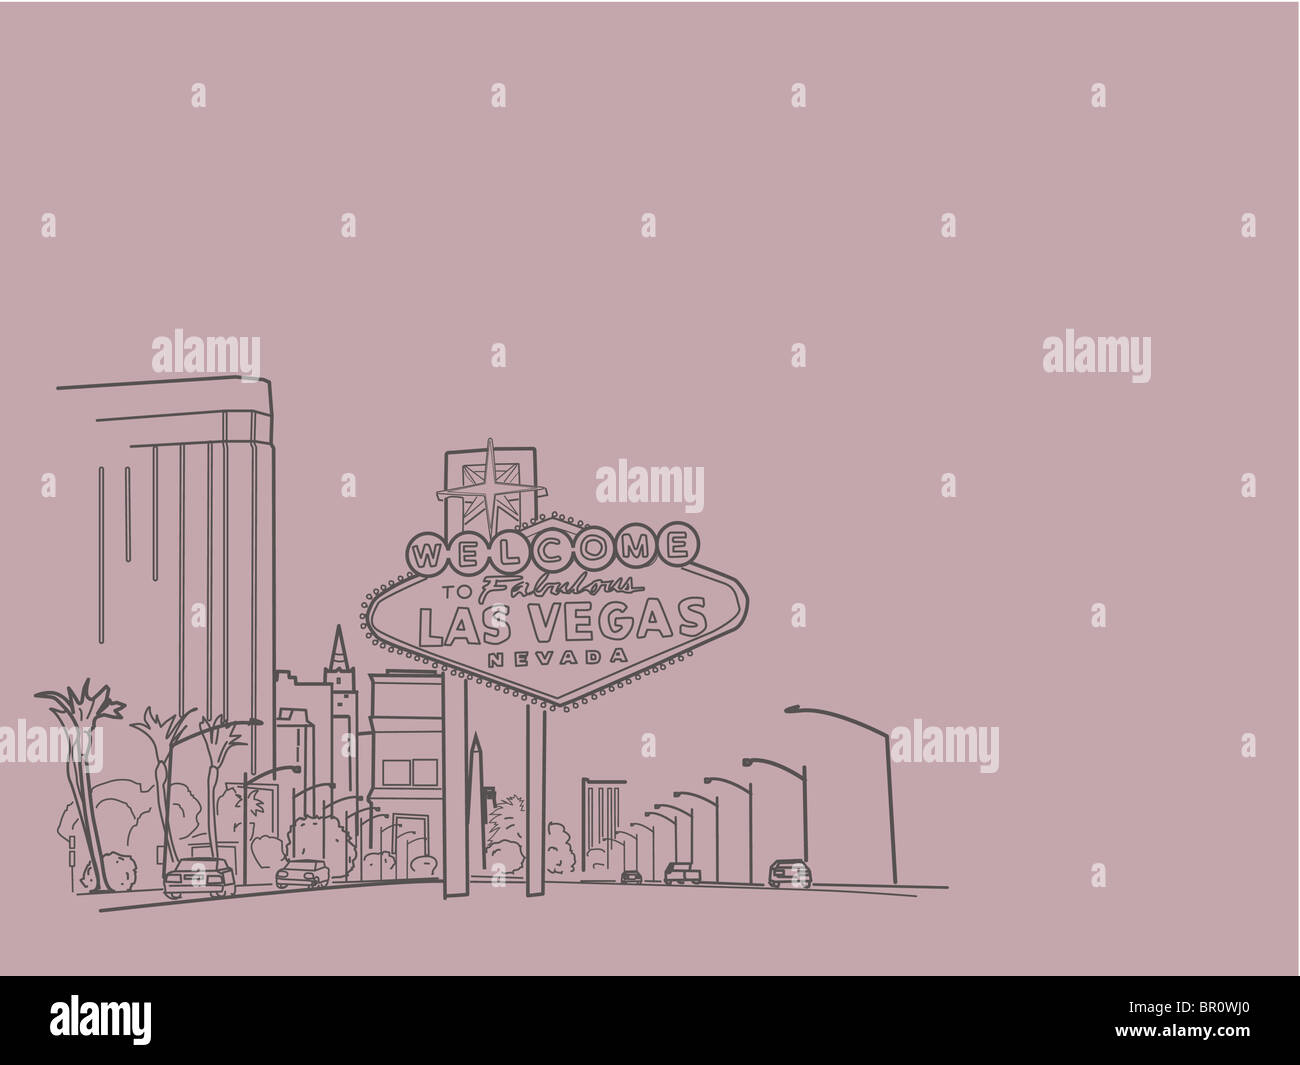 An illustration of city of Las vegas - Stock Image